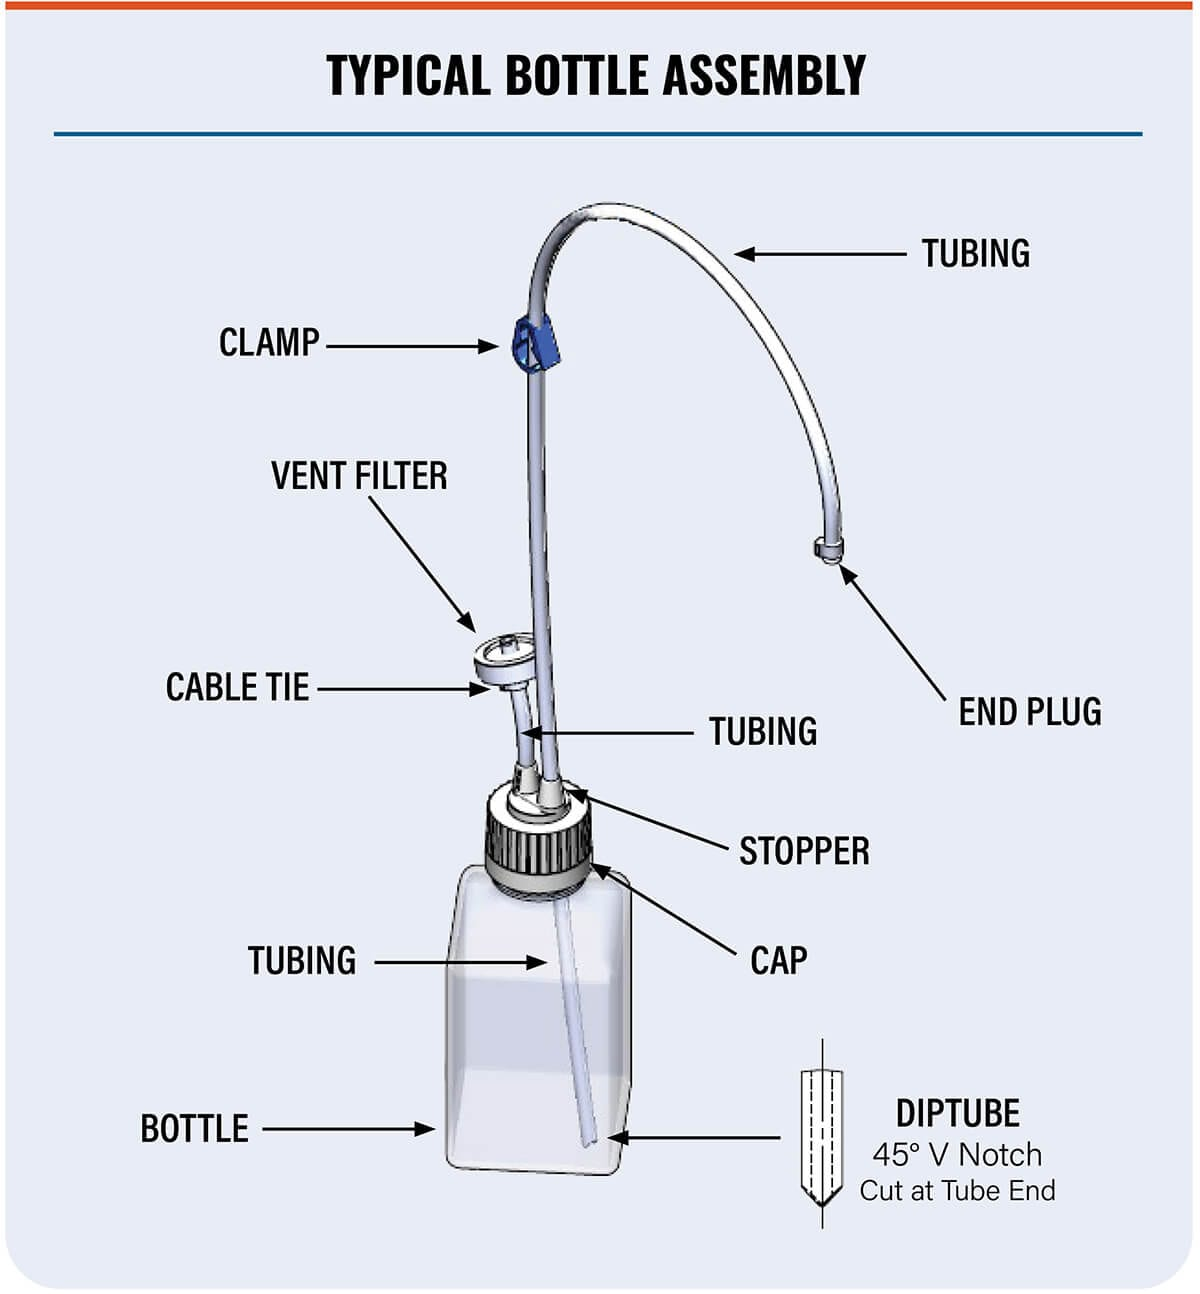 Typical Bottle Assembly